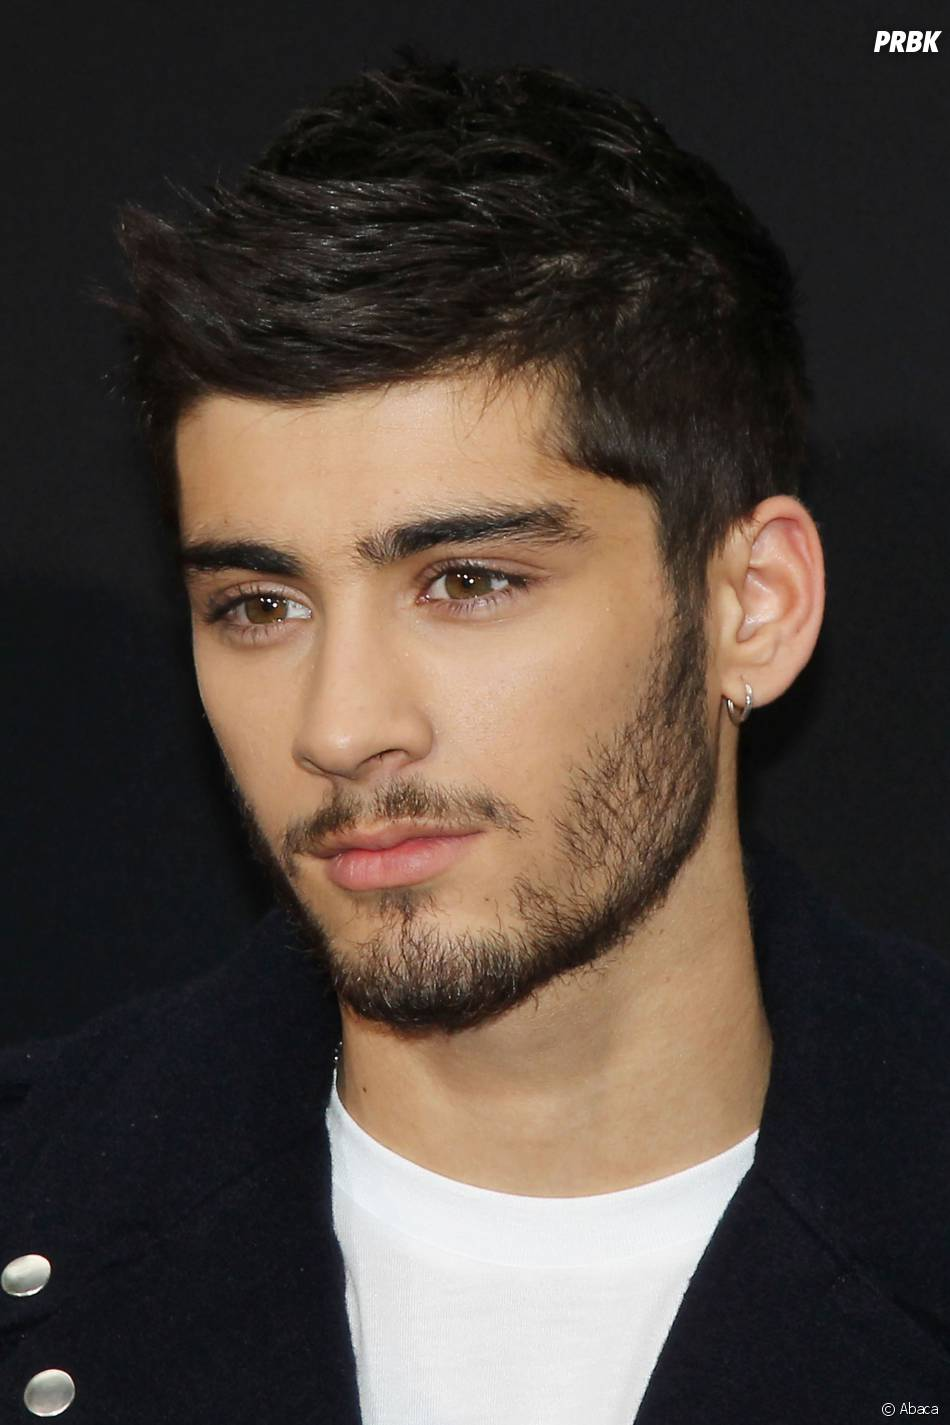 Zayn Malik à l'avant-première du film des One Direction This is Us à New York le 26 août 2013